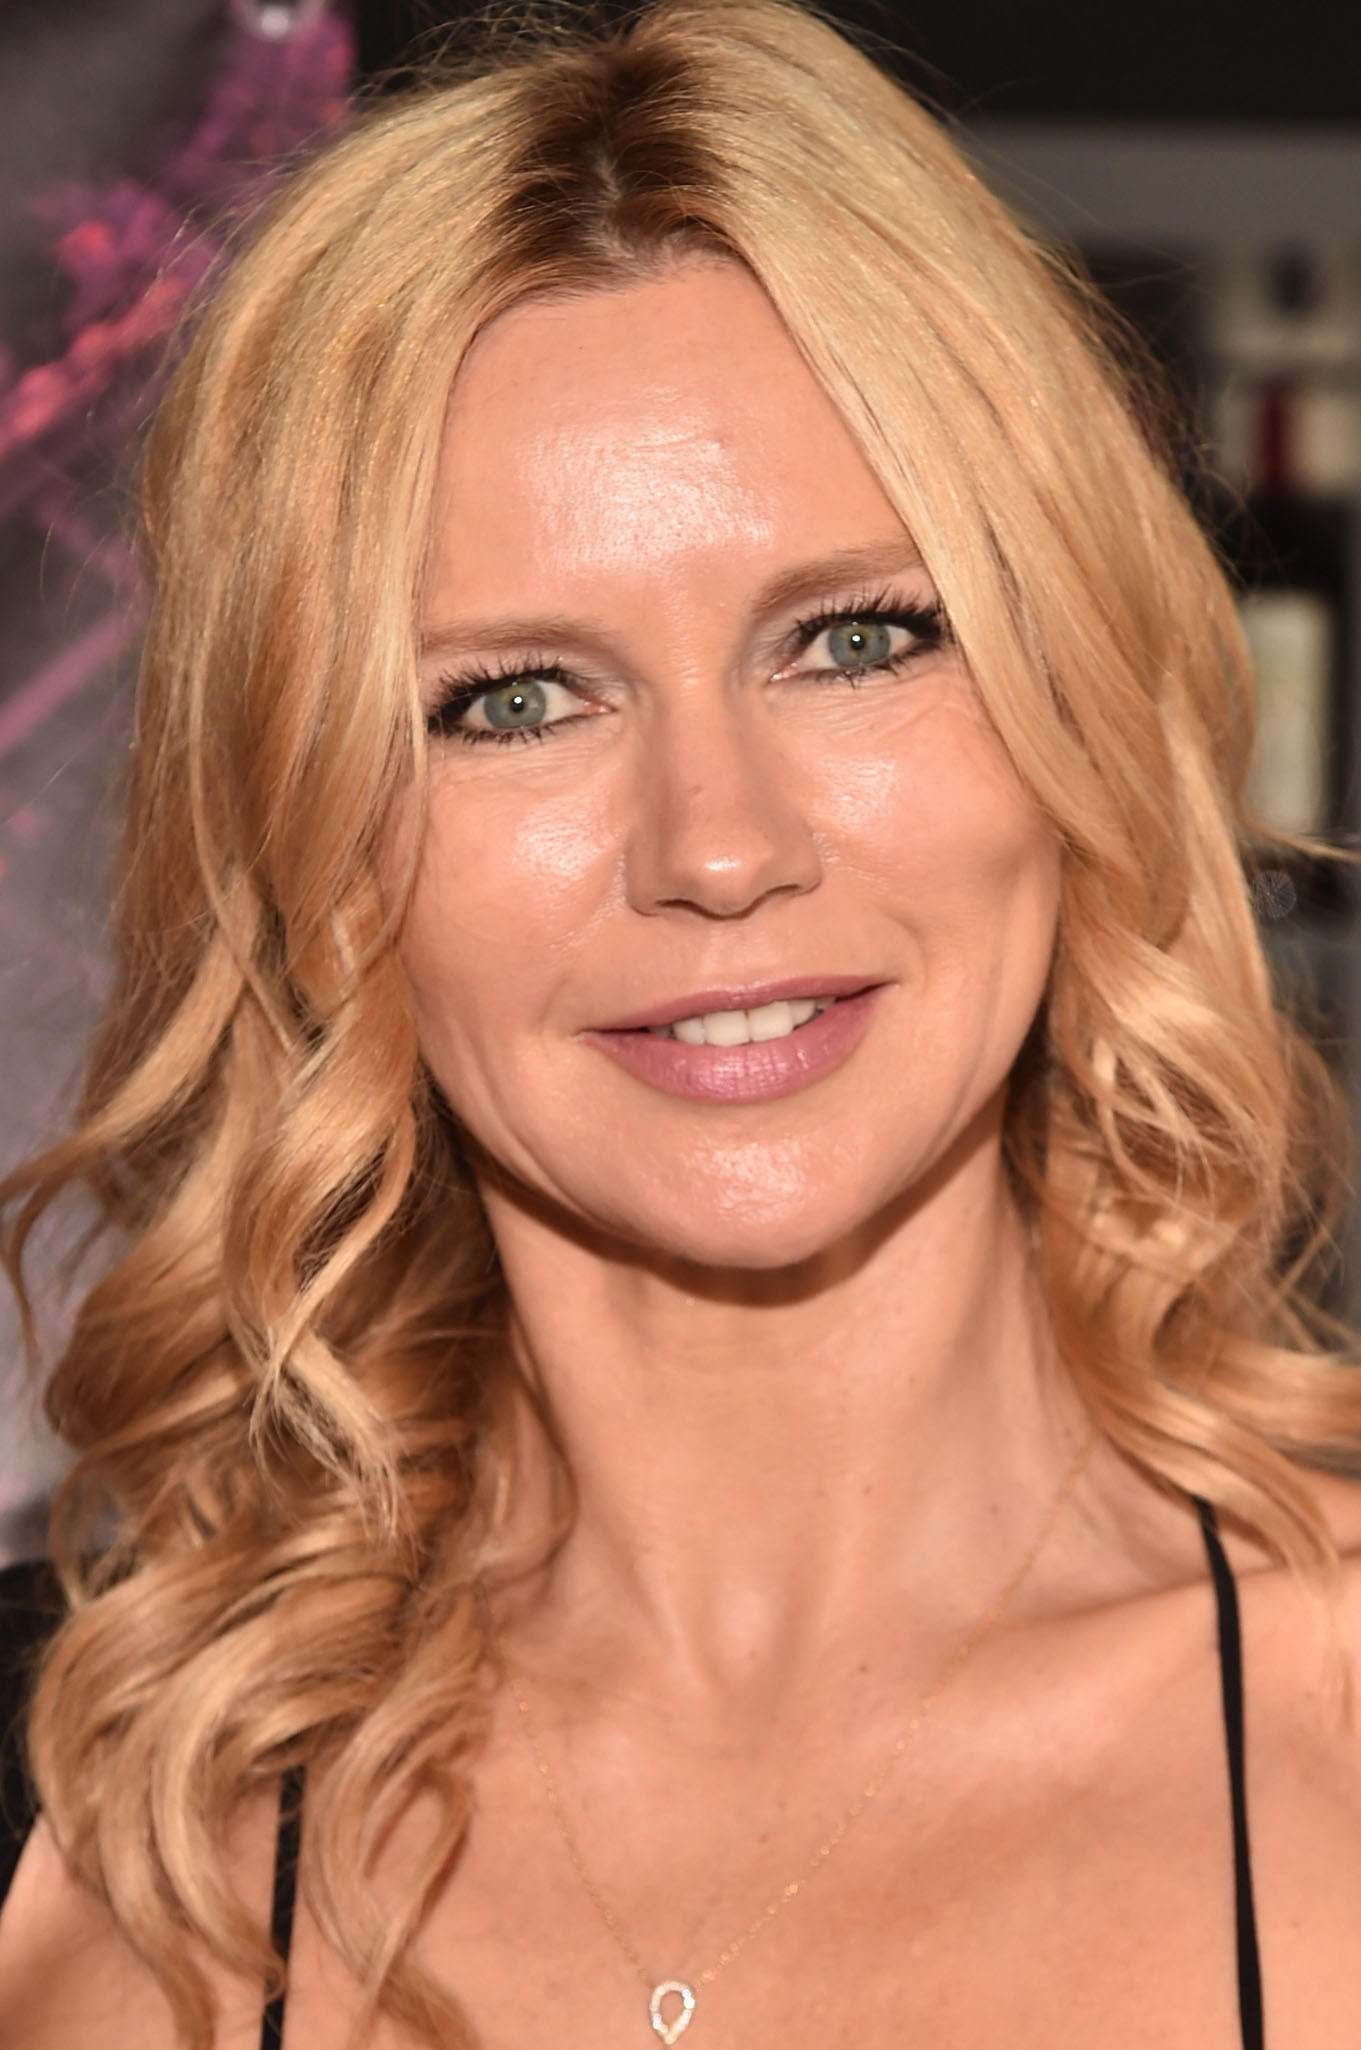 Veronica Ferres during the 2016 Toronto International Film Festival.